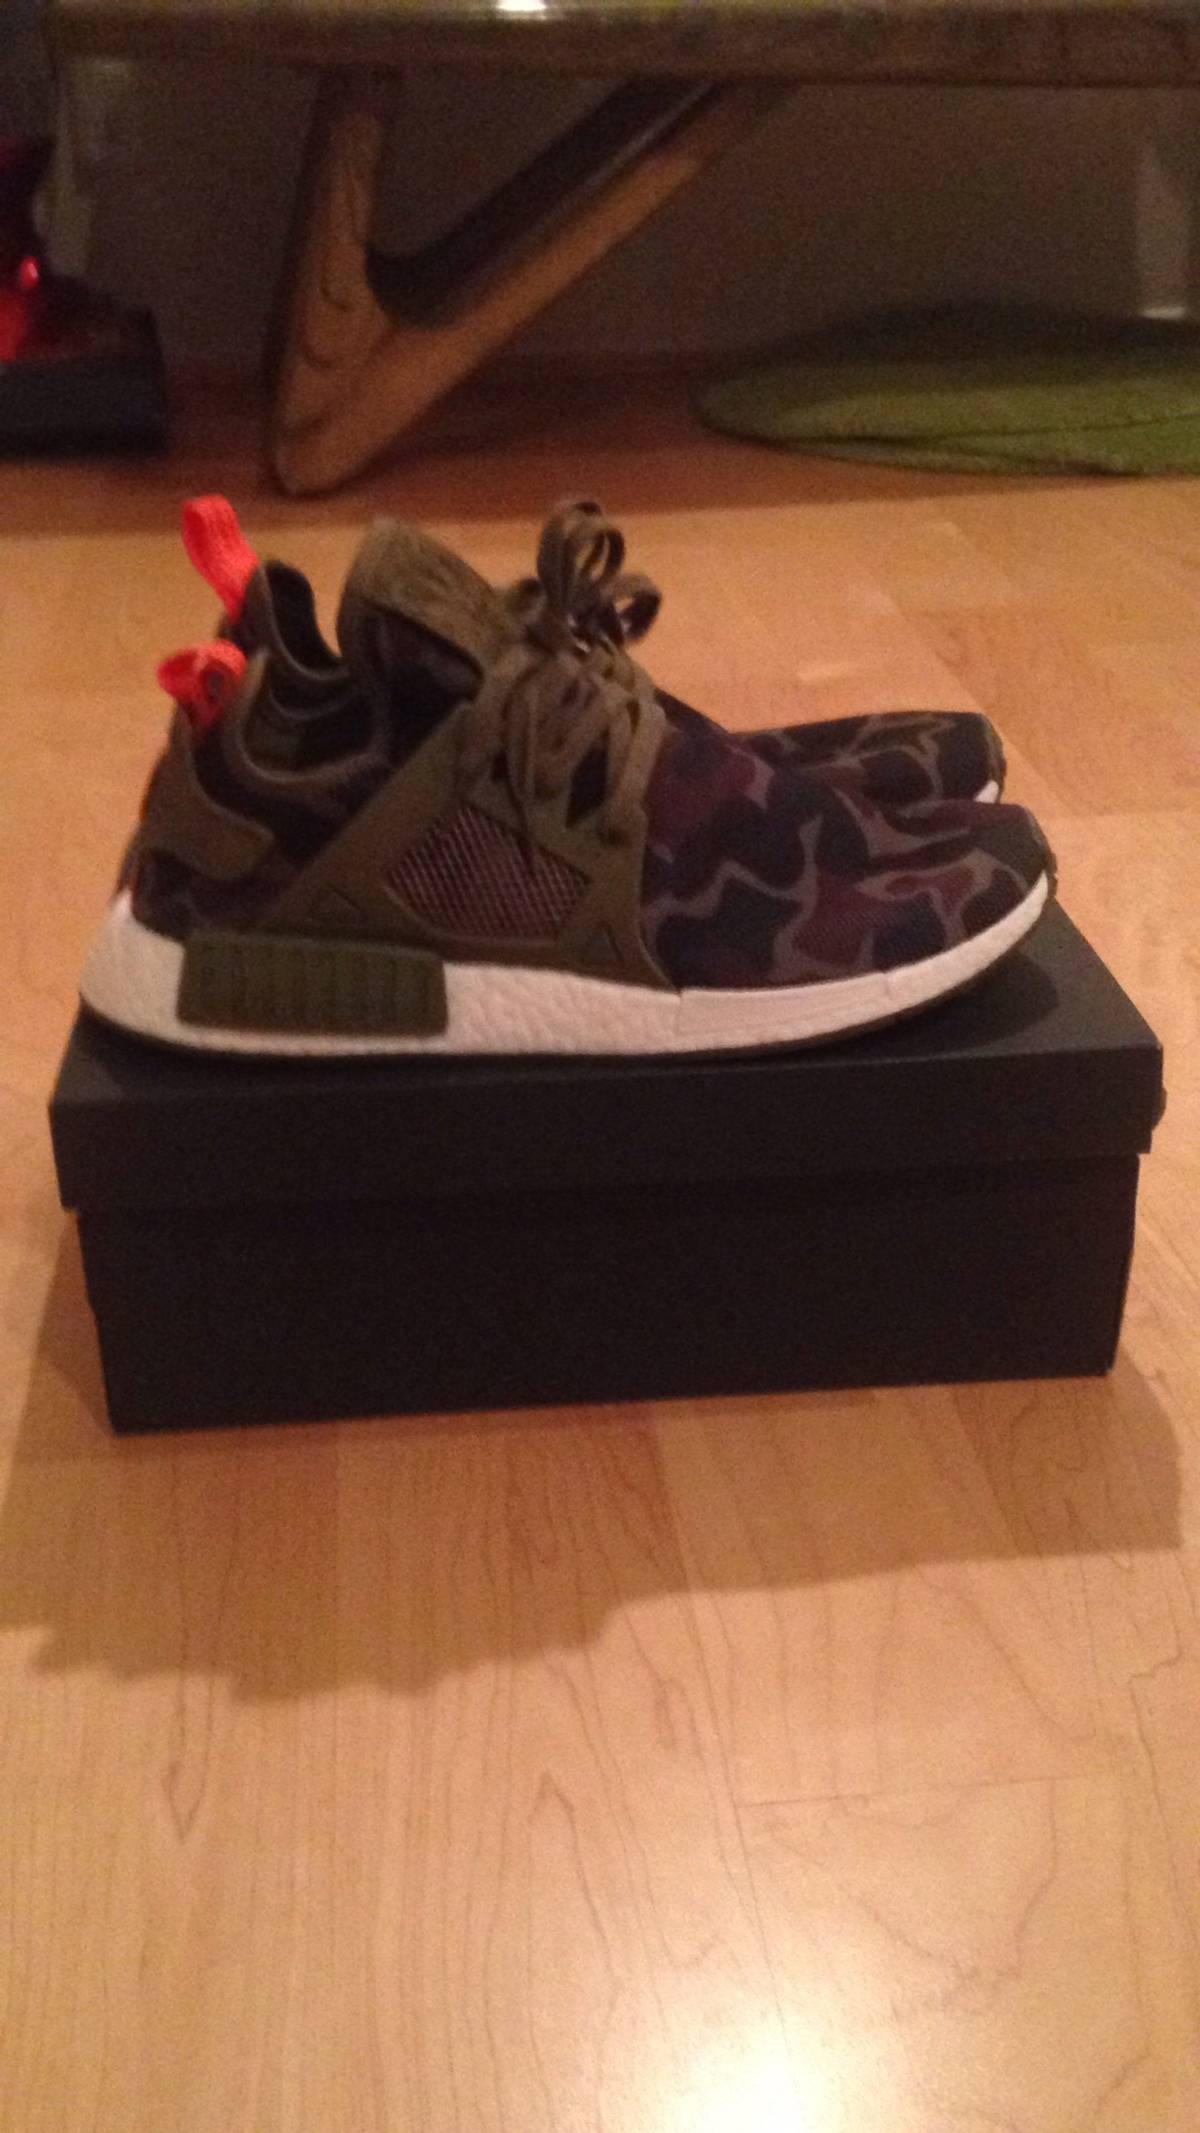 f3d634408d928 Adidas Adidas NMD XR1 Duck Camo  Olive Camo Size 11 - Low-Top ...